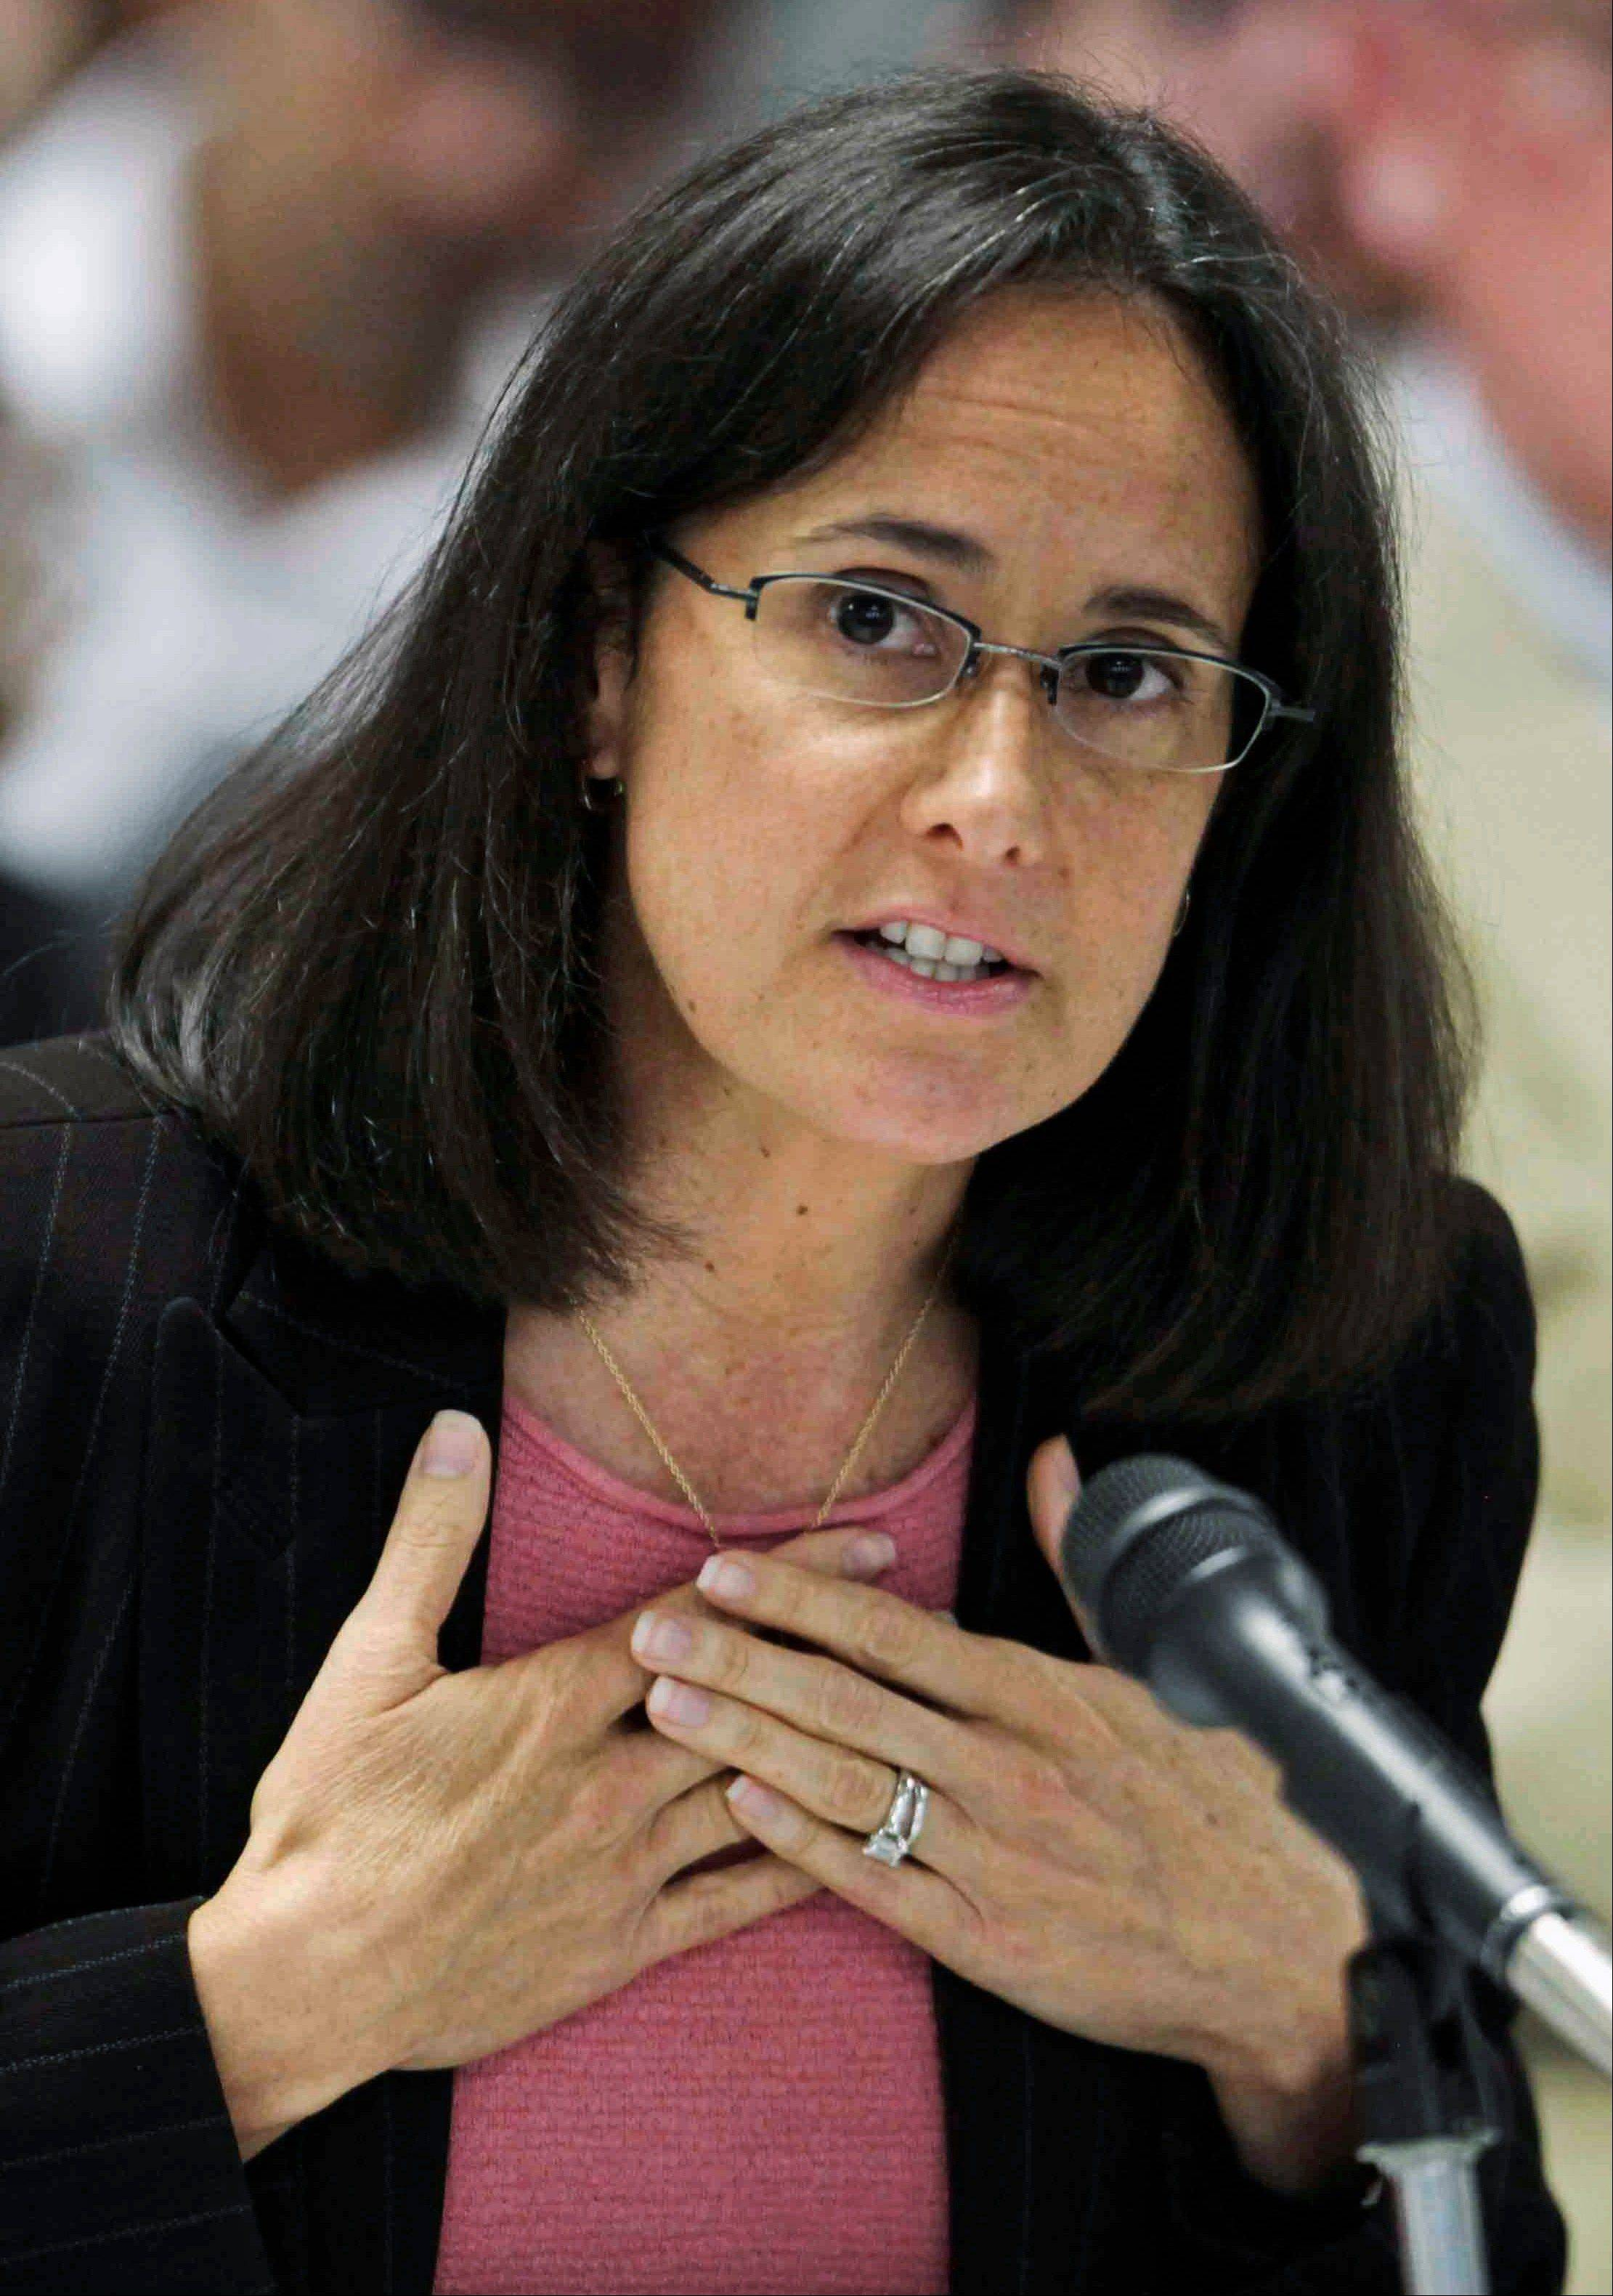 Illinois Attorney Gen. Lisa Madigan said Tuesday she filed a petition asking that all 15 judges on the U.S. 7th Circuit Court of Appeals review a lawsuit challenging the ban.